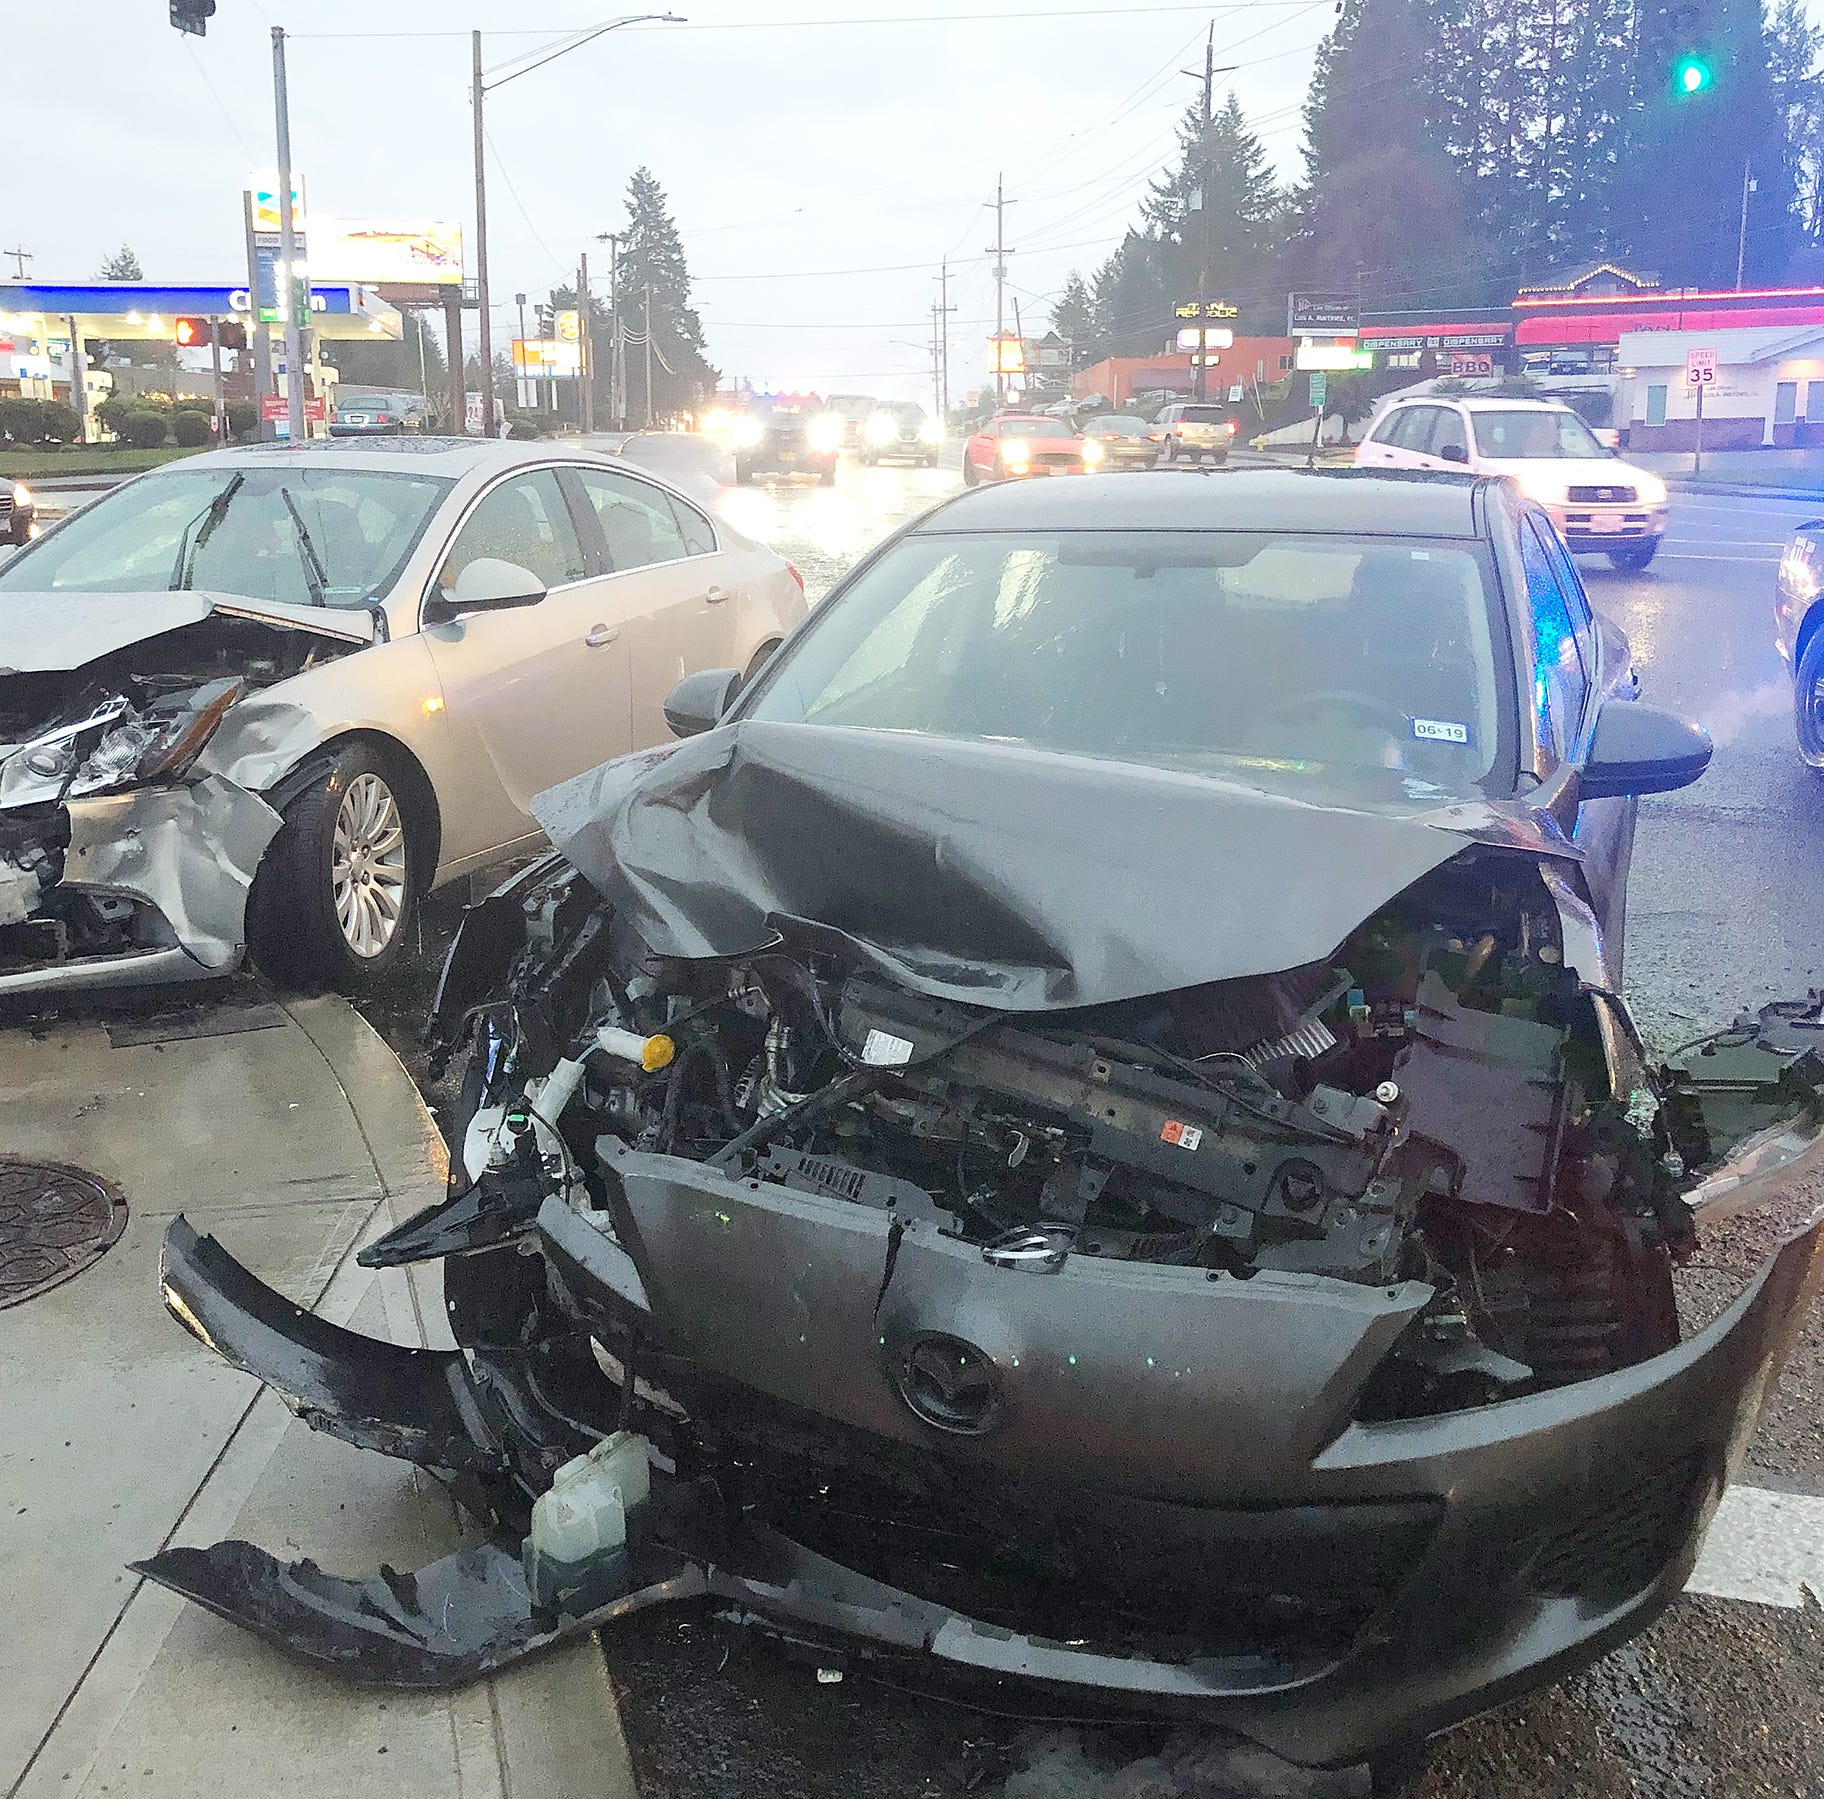 Crash stalls traffic at Commercial Street SE, Madrona Avenue SE